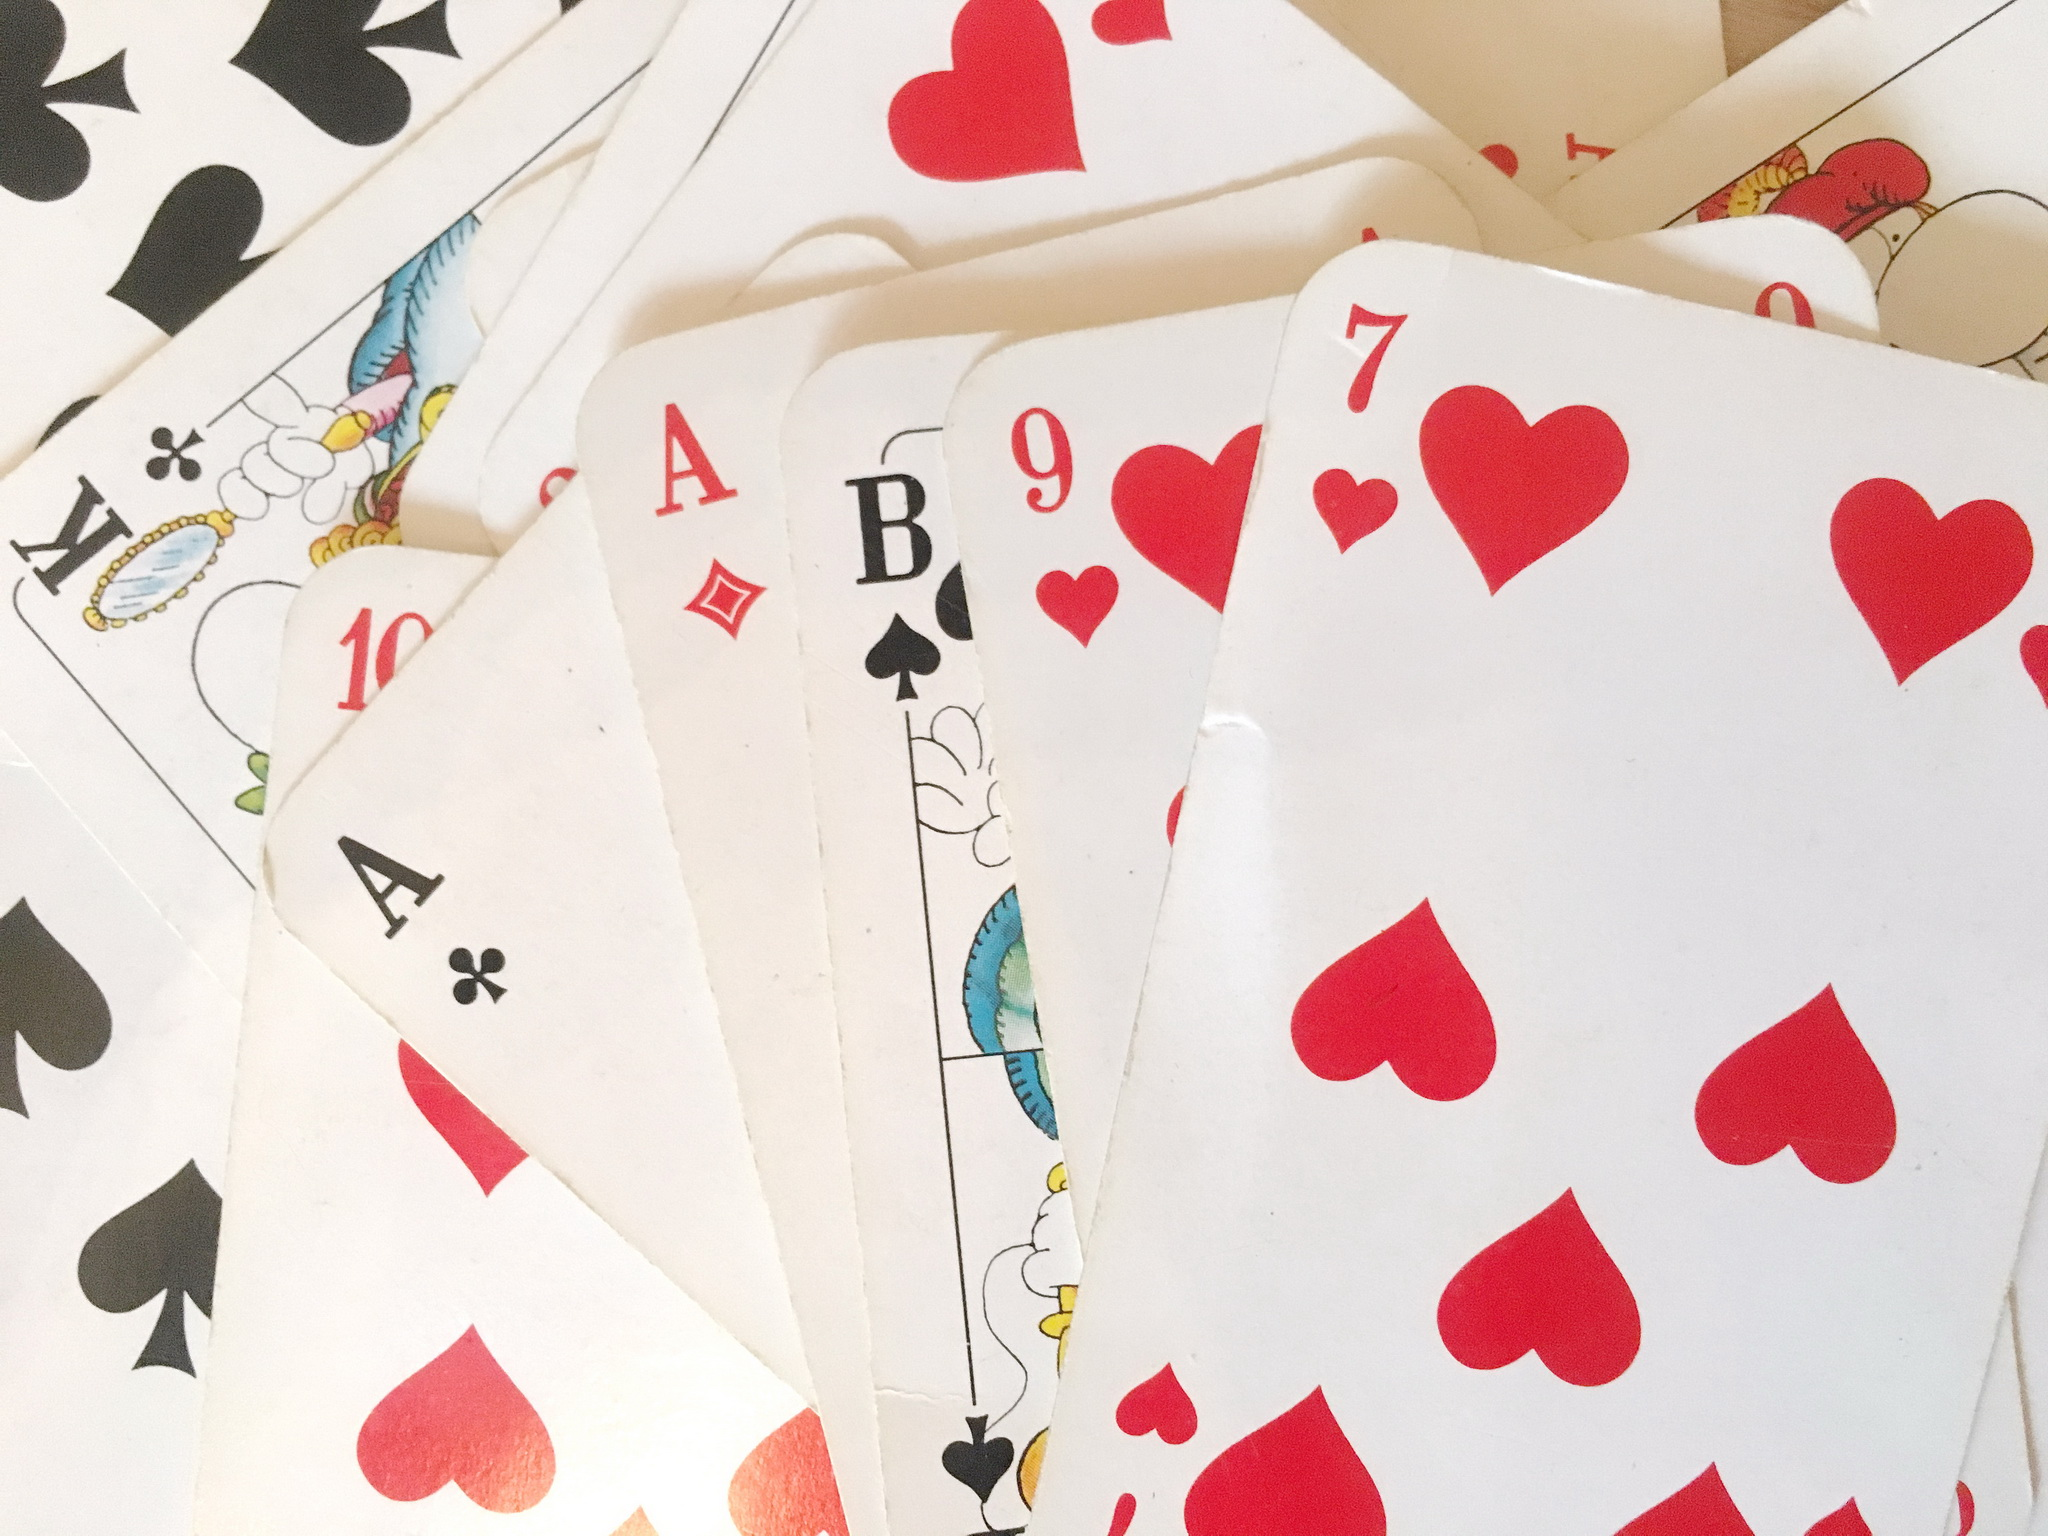 some playing cards